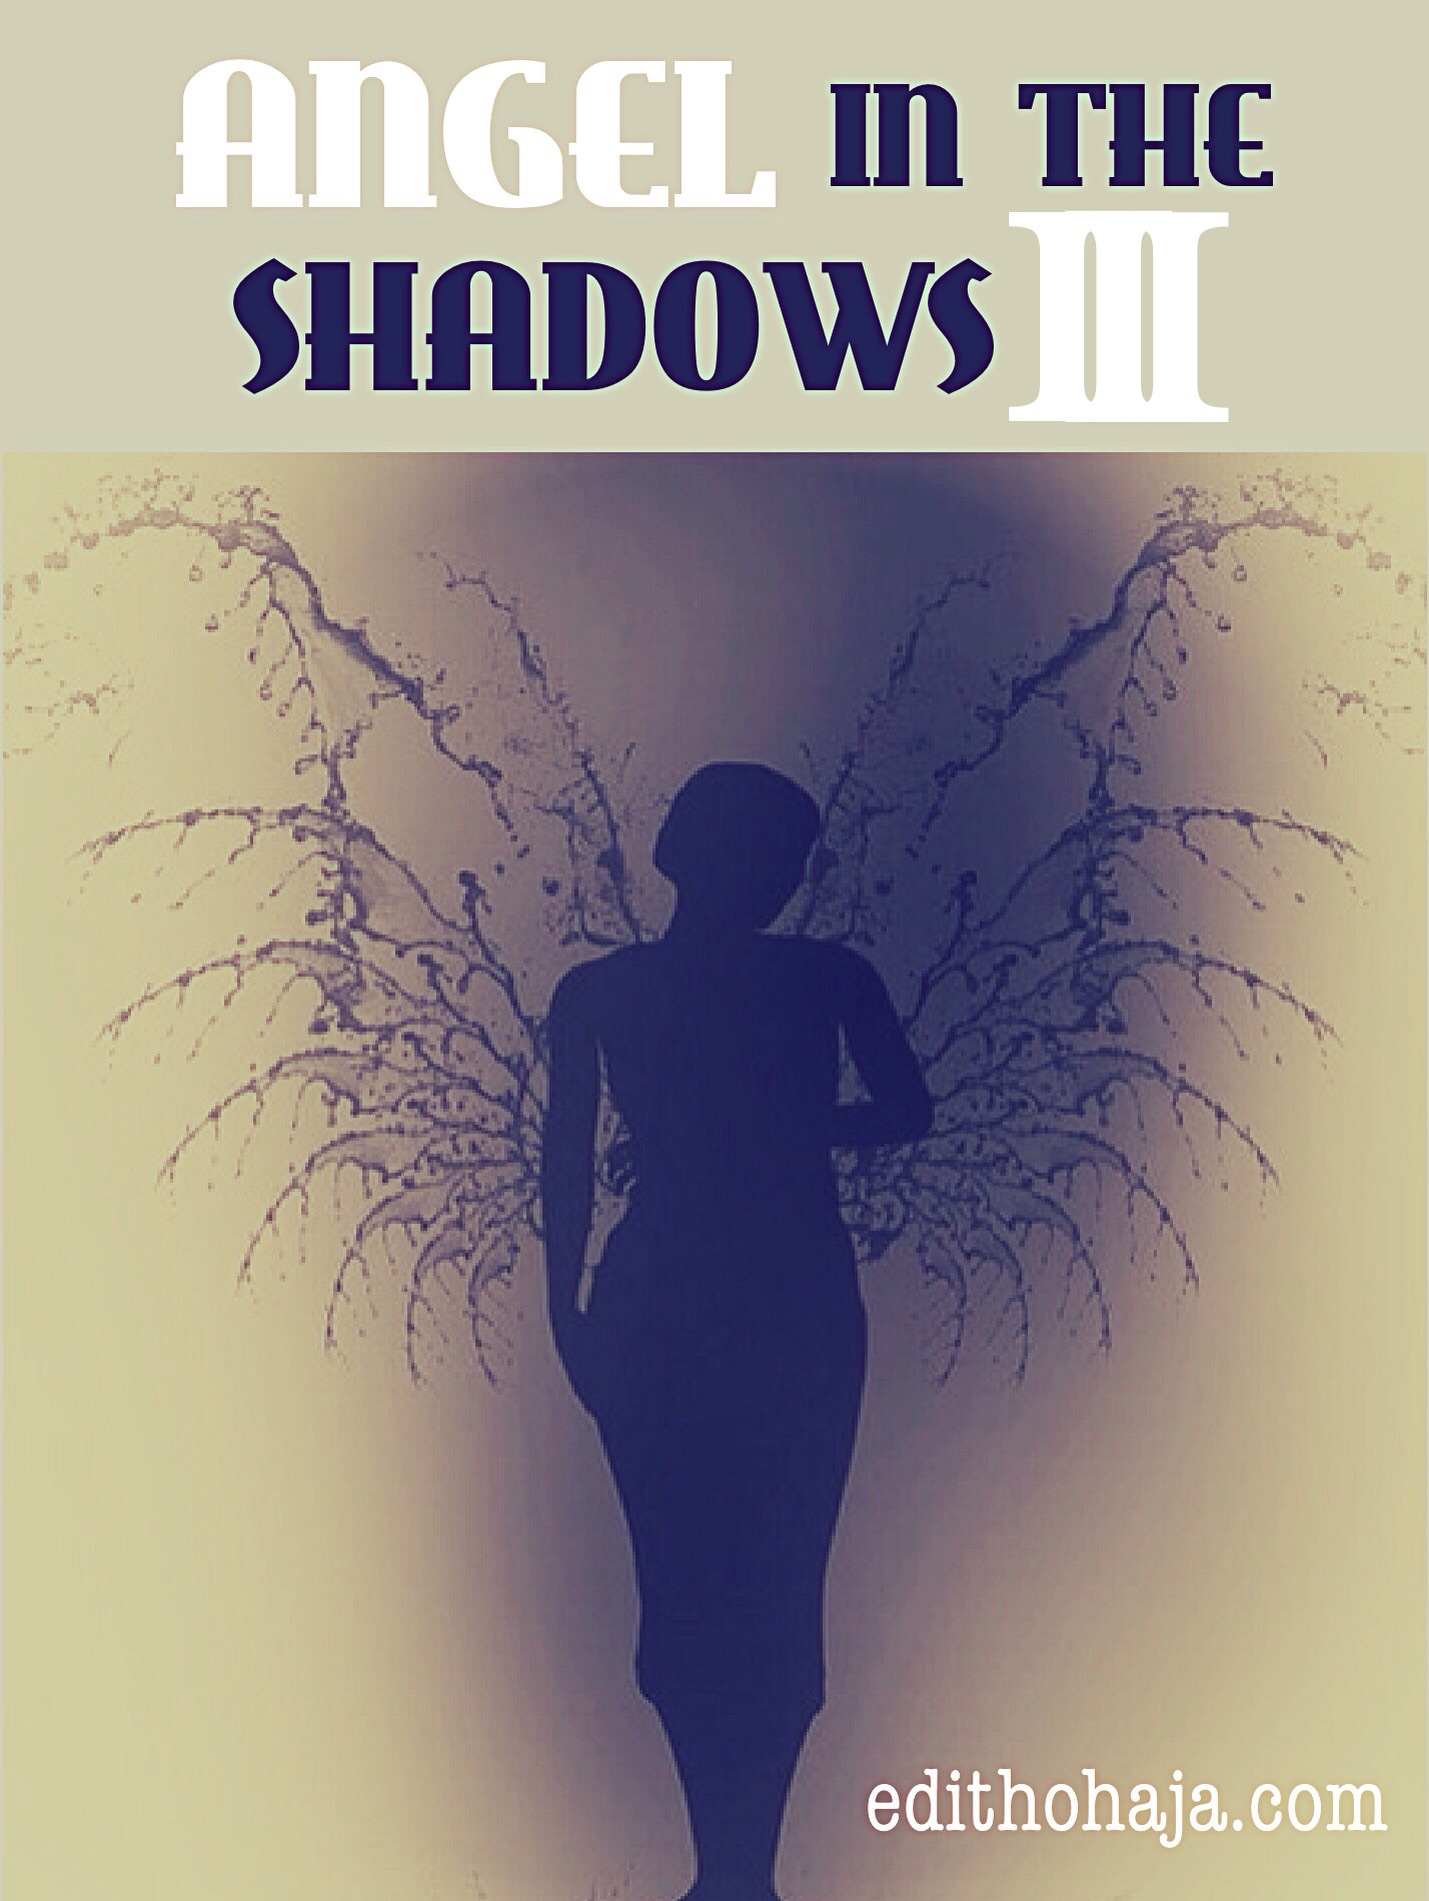 ANGEL IN THE SHADOWS (III) SHORT STORY